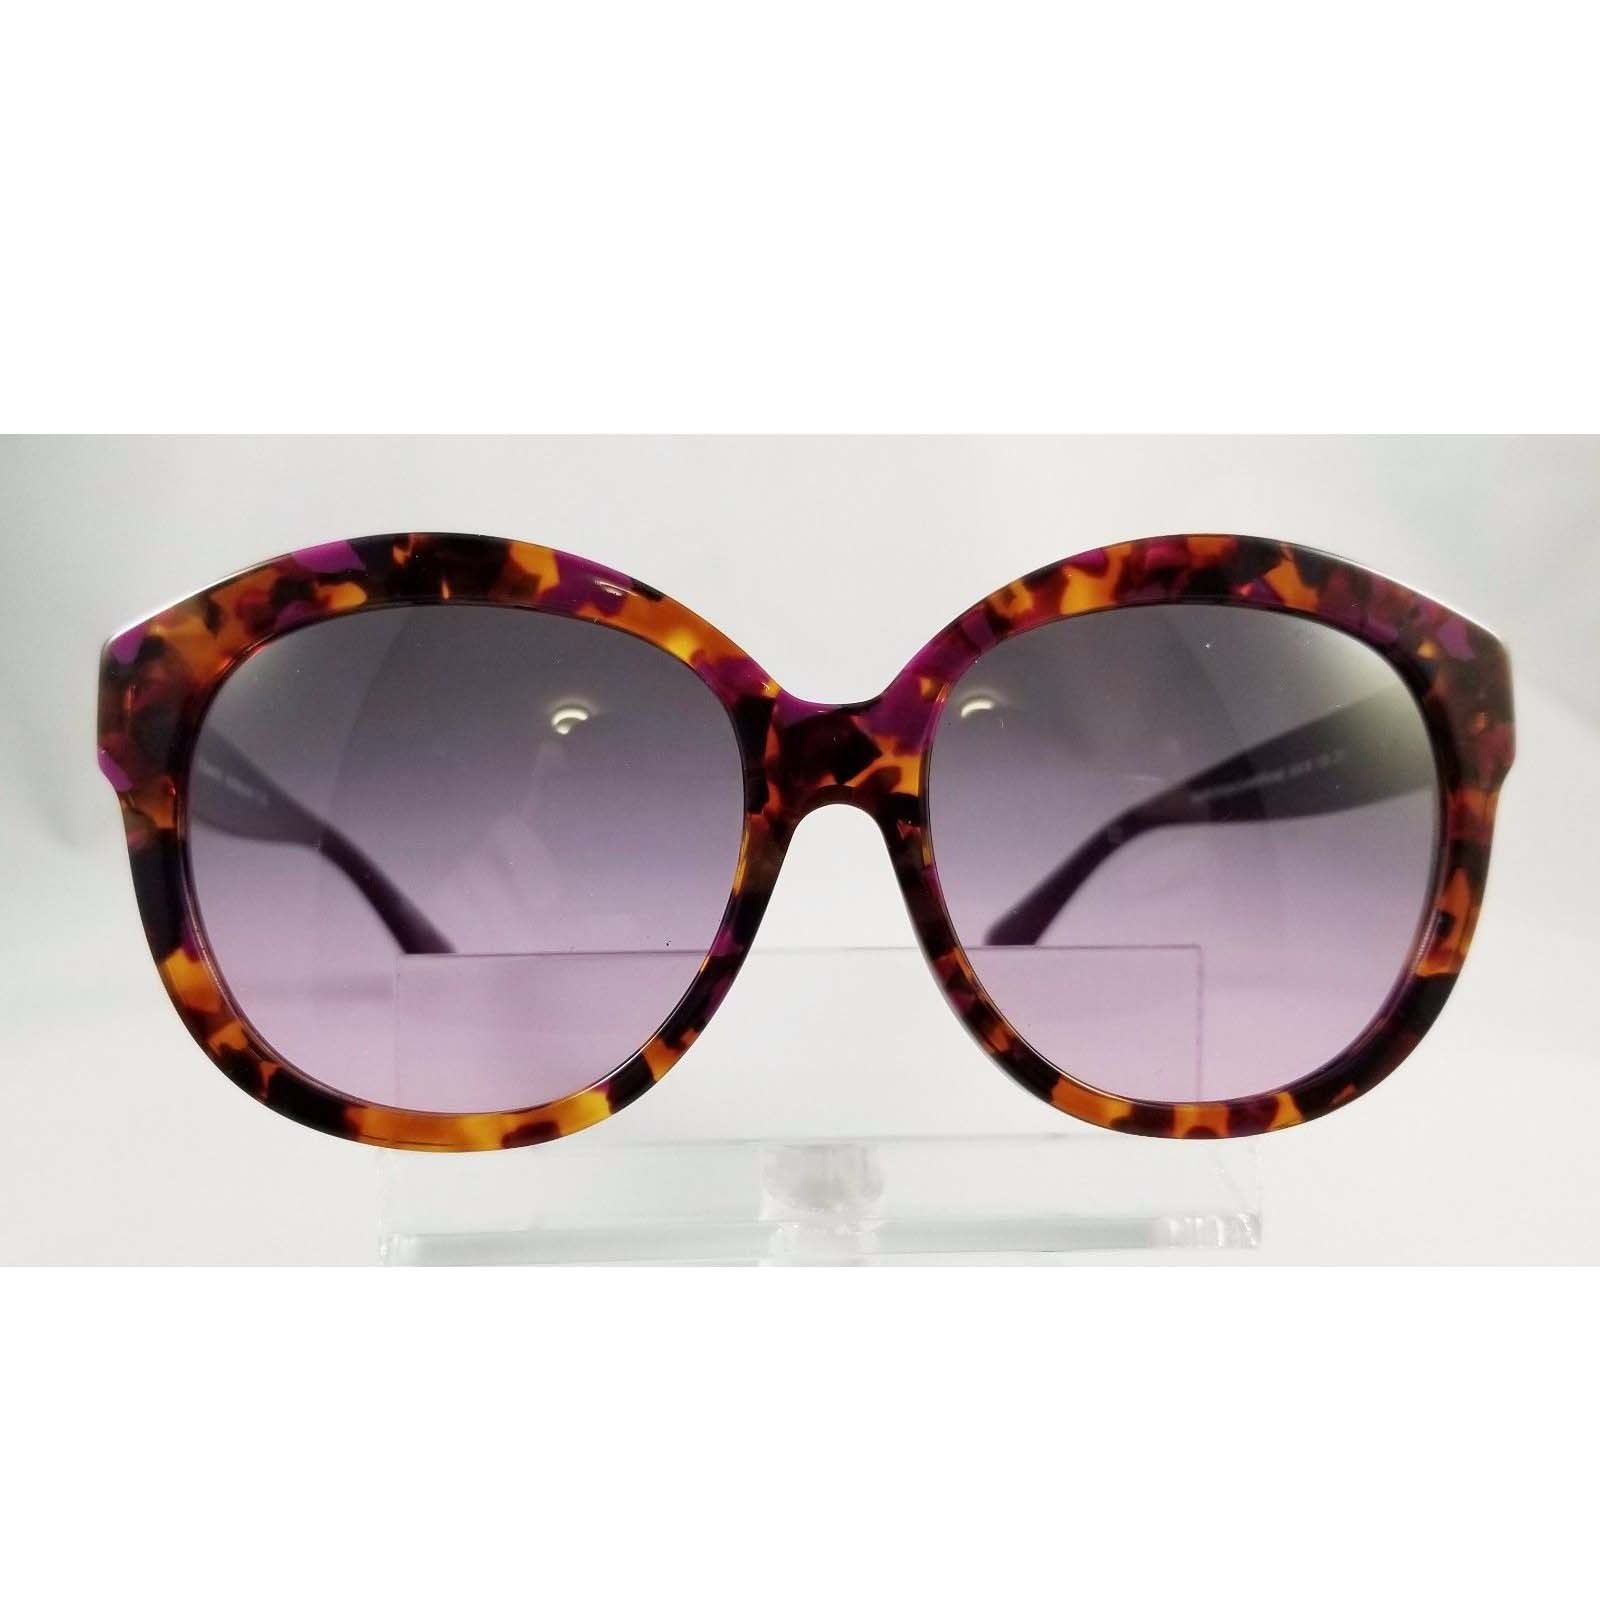 44bb943e61232 buy coach sunglasses hc8159 533990 purple confetti frames purple 74470 fa85d